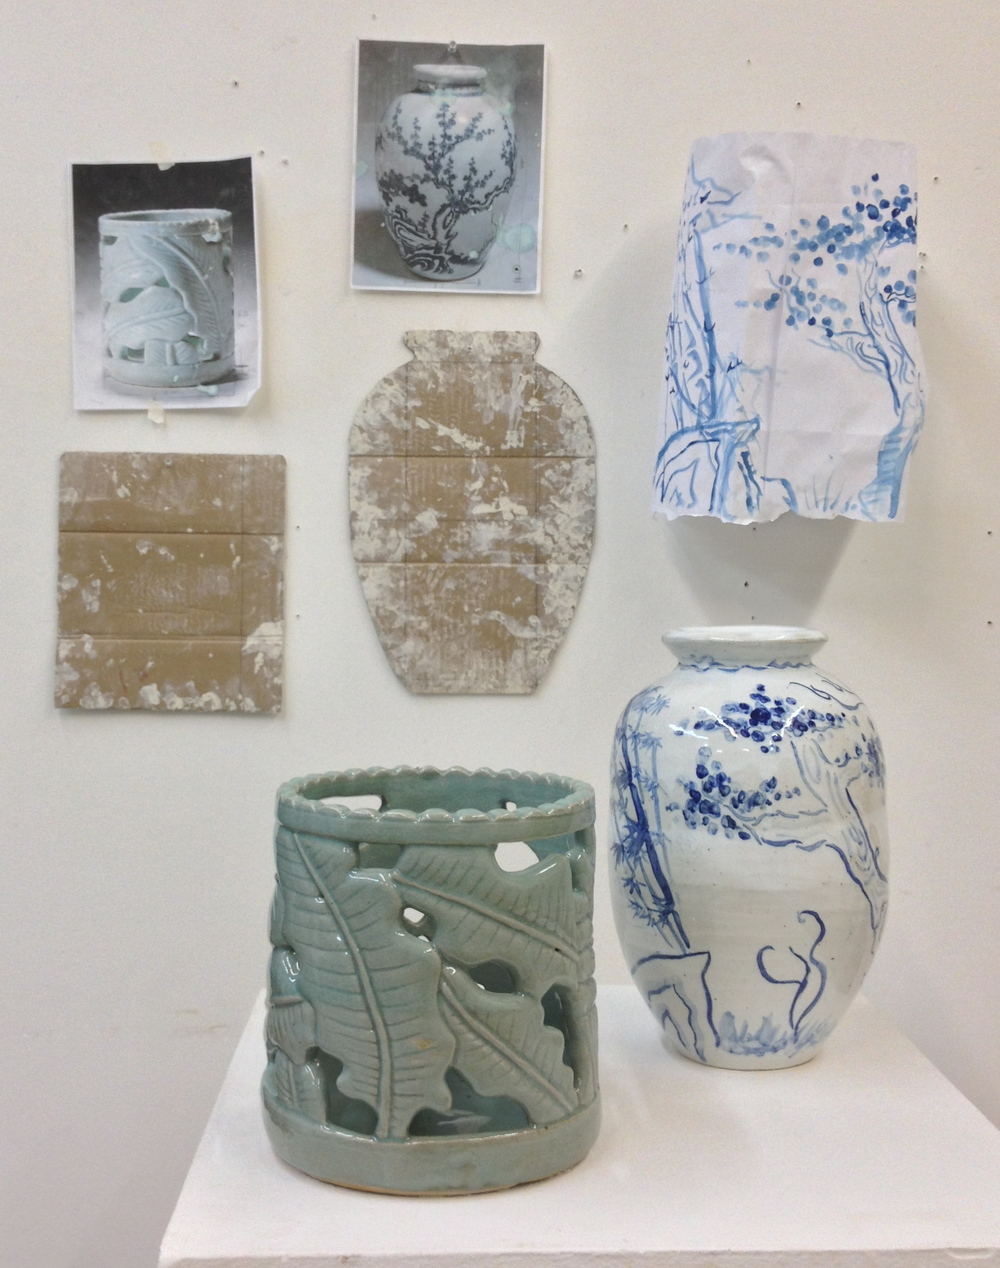 Here a student scaled up what is normally a small celadon brush holder, along with her cobalt pot.  On the wall behind the pots are the drawings and templates she used to help understand and produce the pots.